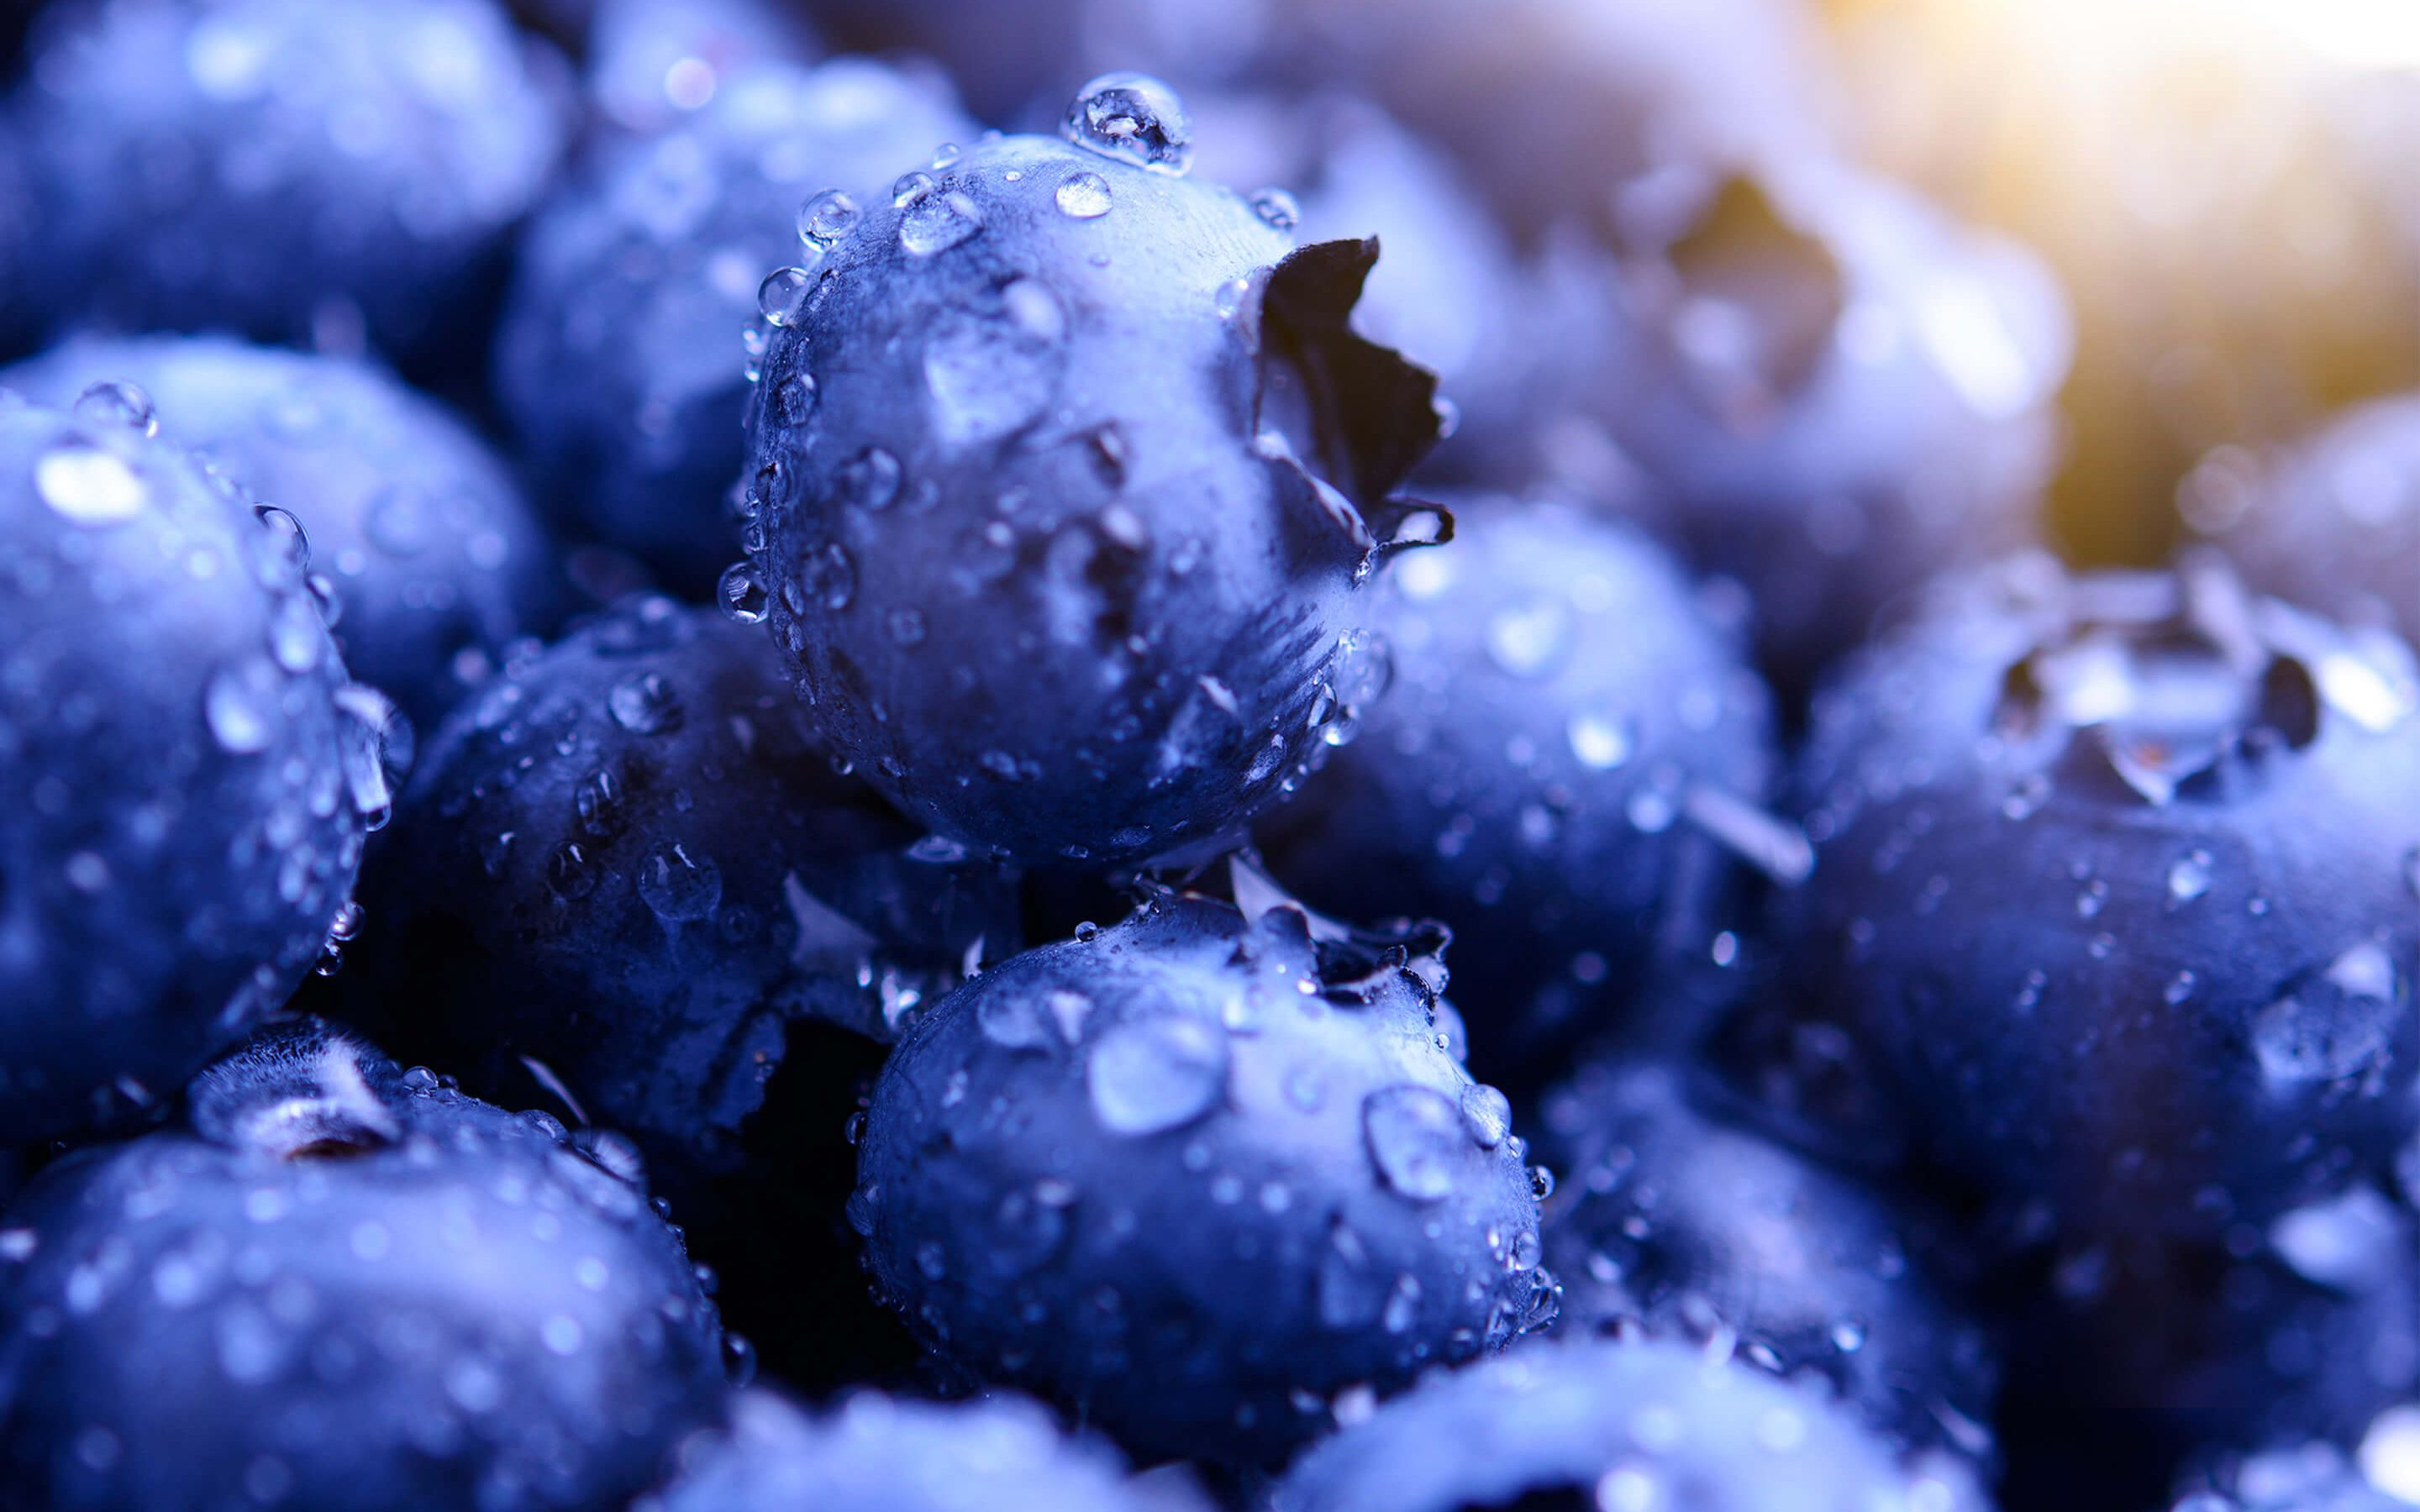 Blueberries Macro Food Photography Wallpaper Blueberry